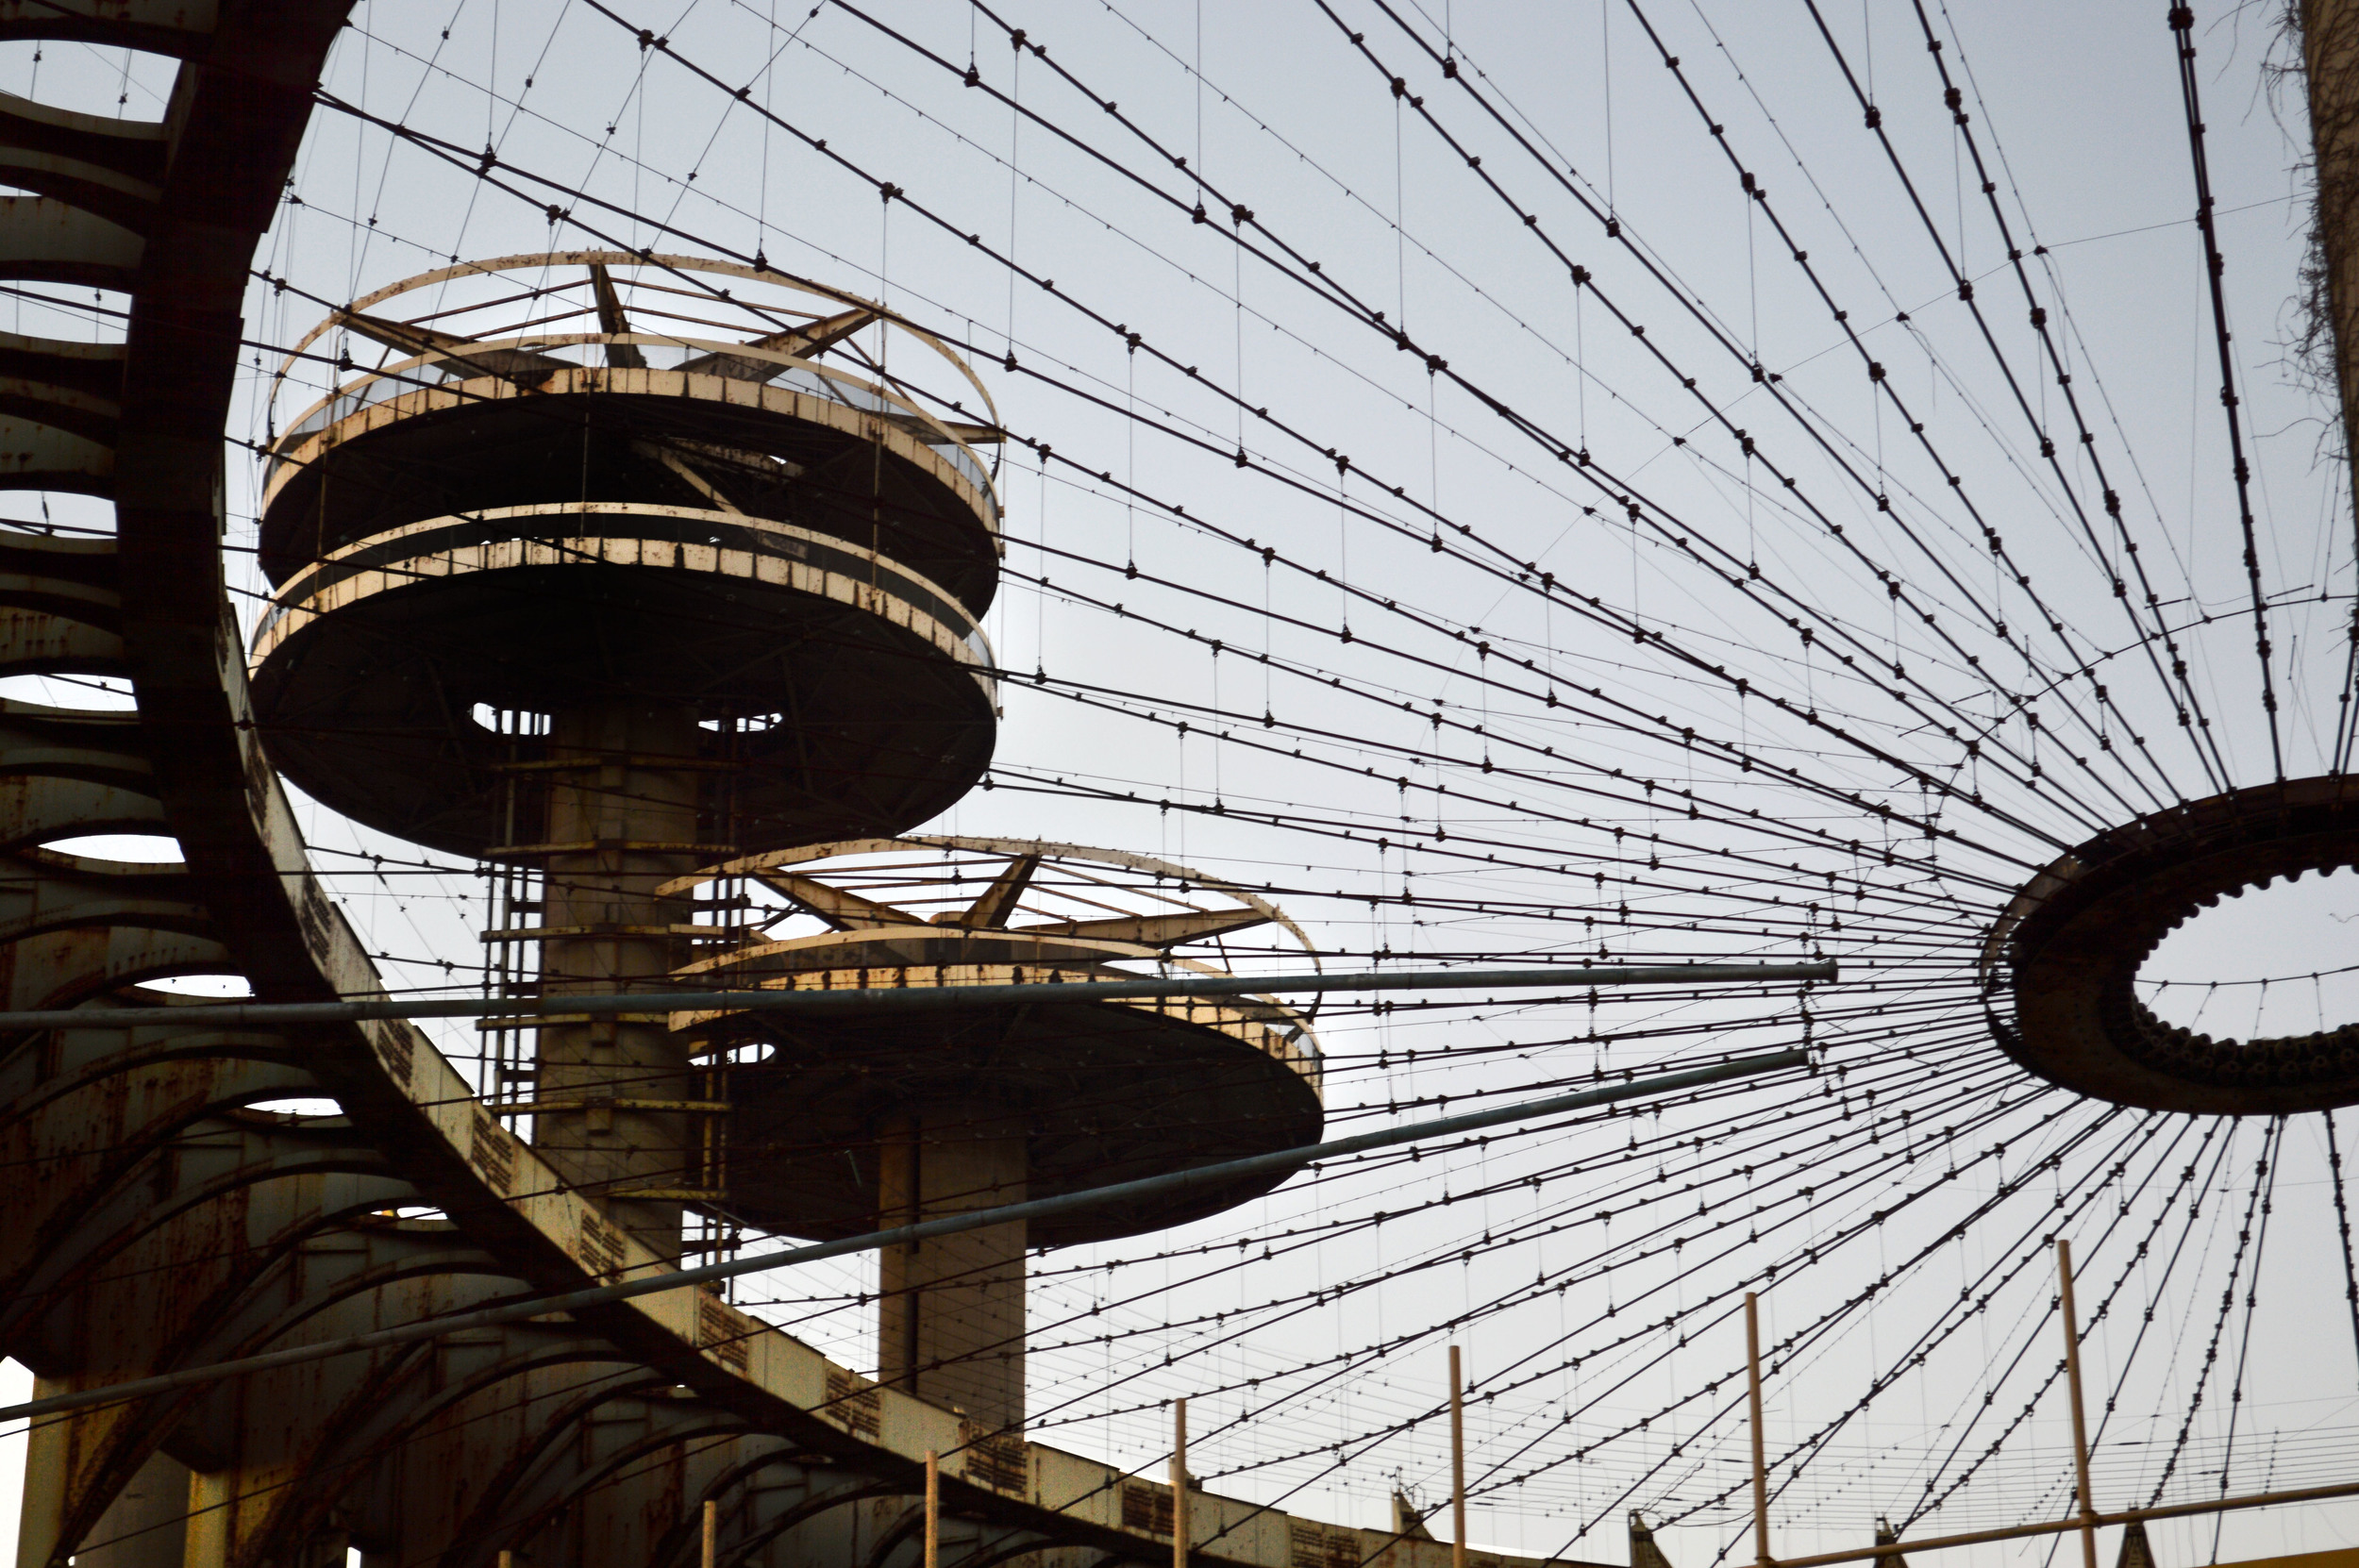 New York State Pavilion 1964 World's Fair